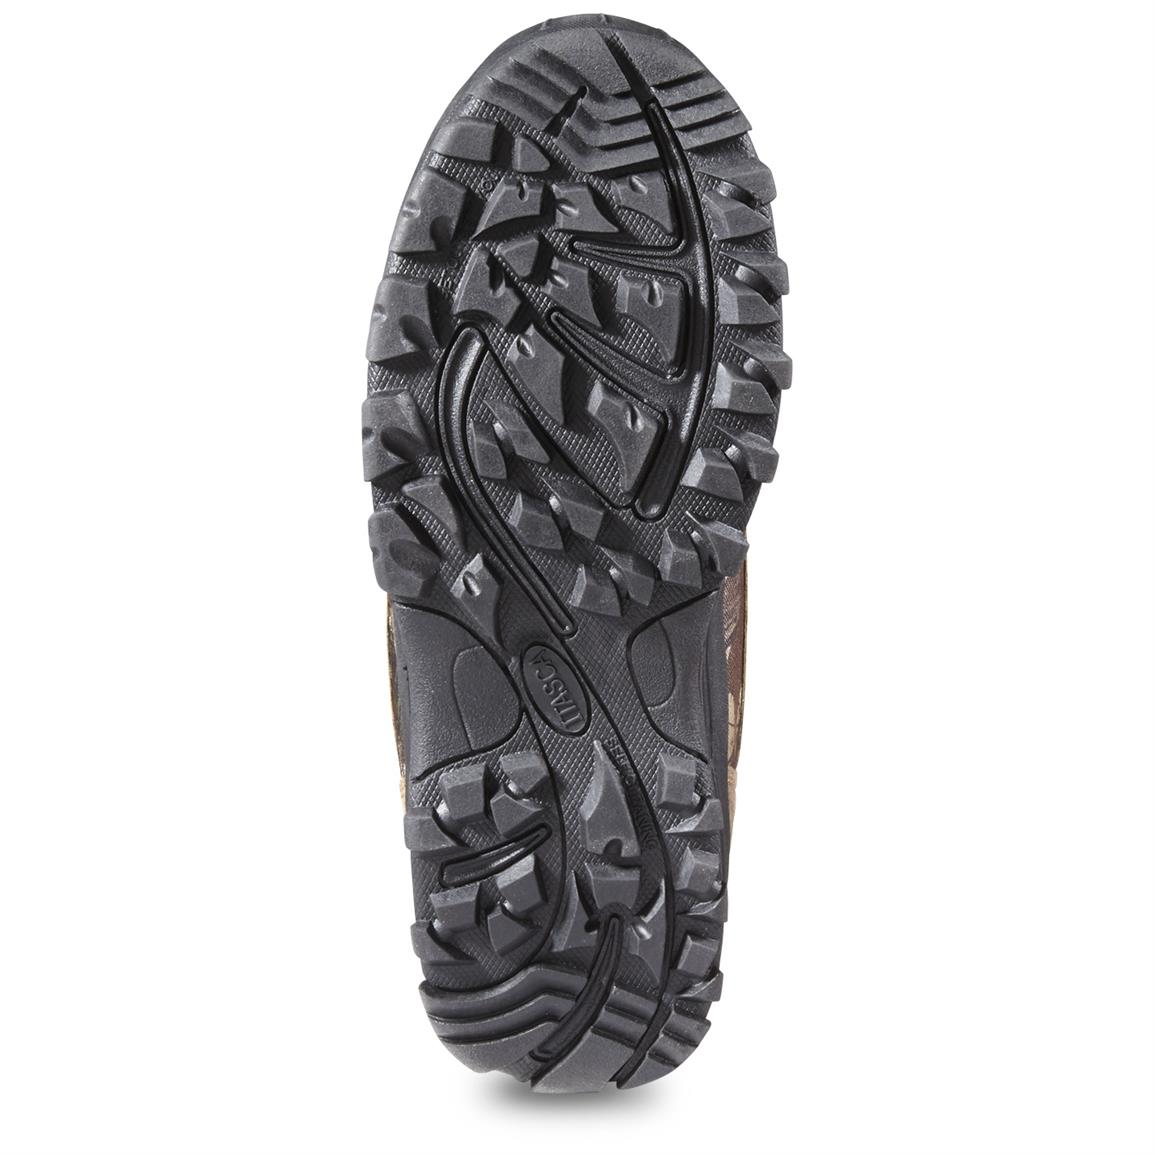 Outsole with heavy tread for ground-biting traction